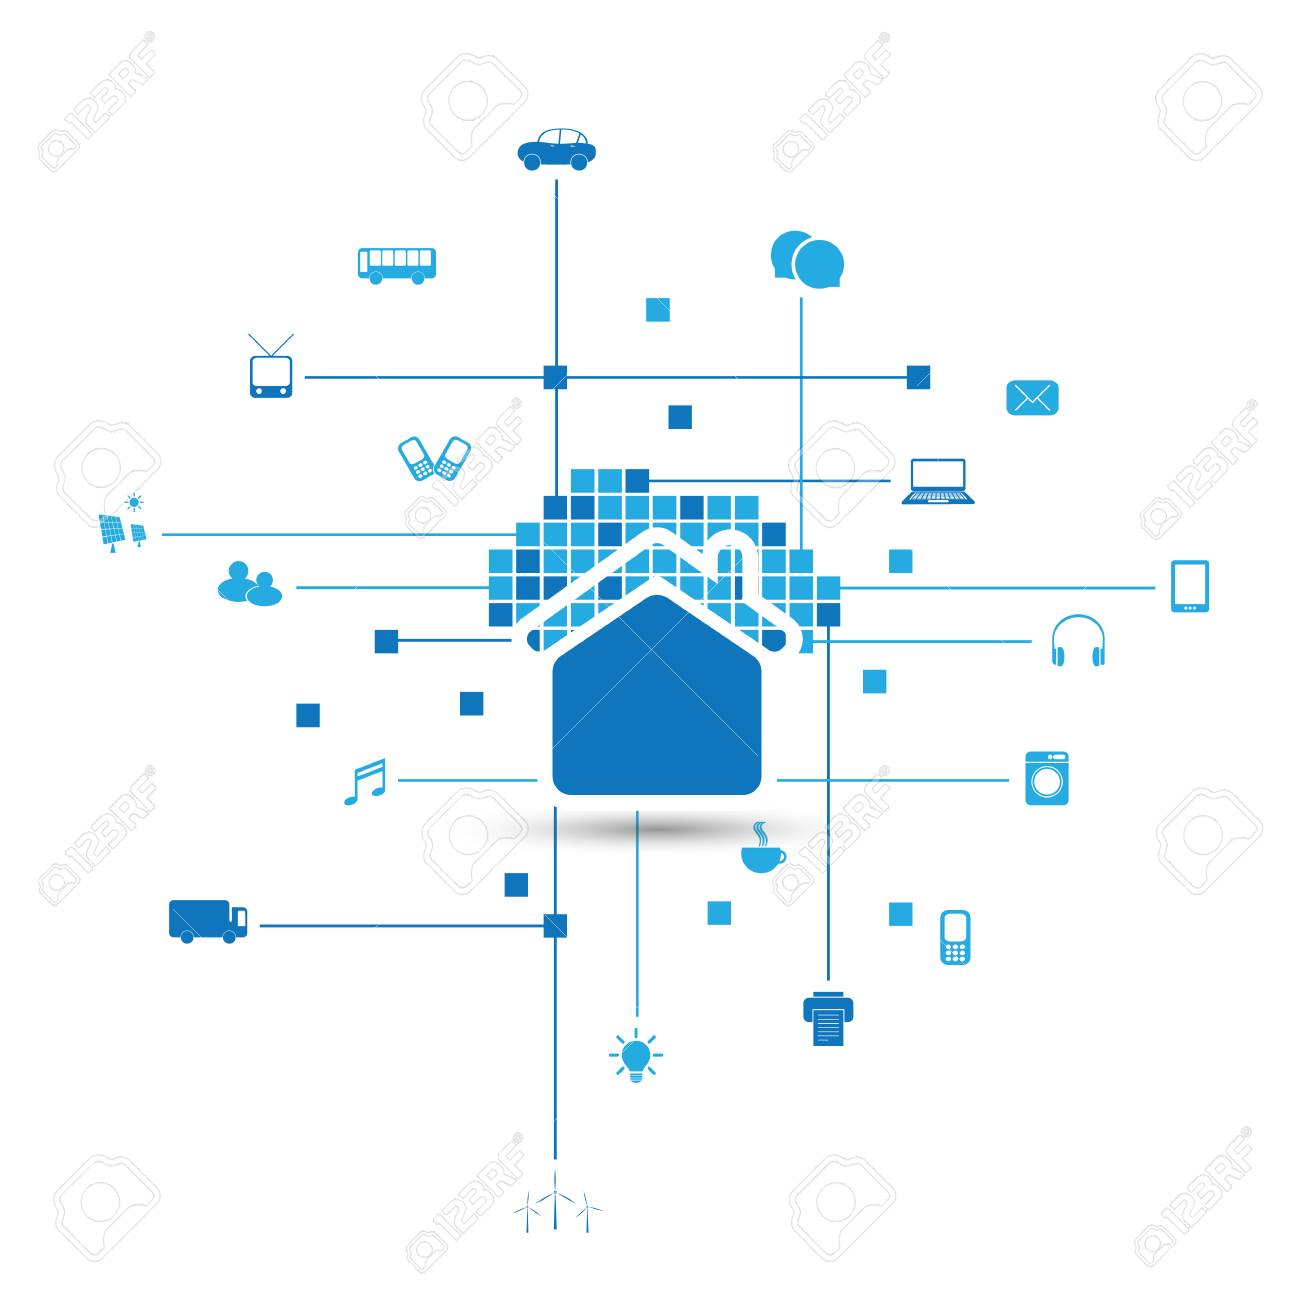 Cloud Computing Iot Home Automation Design Concept With Icons Royalty Free Cliparts Vectors And Stock Illustration Image 100998753